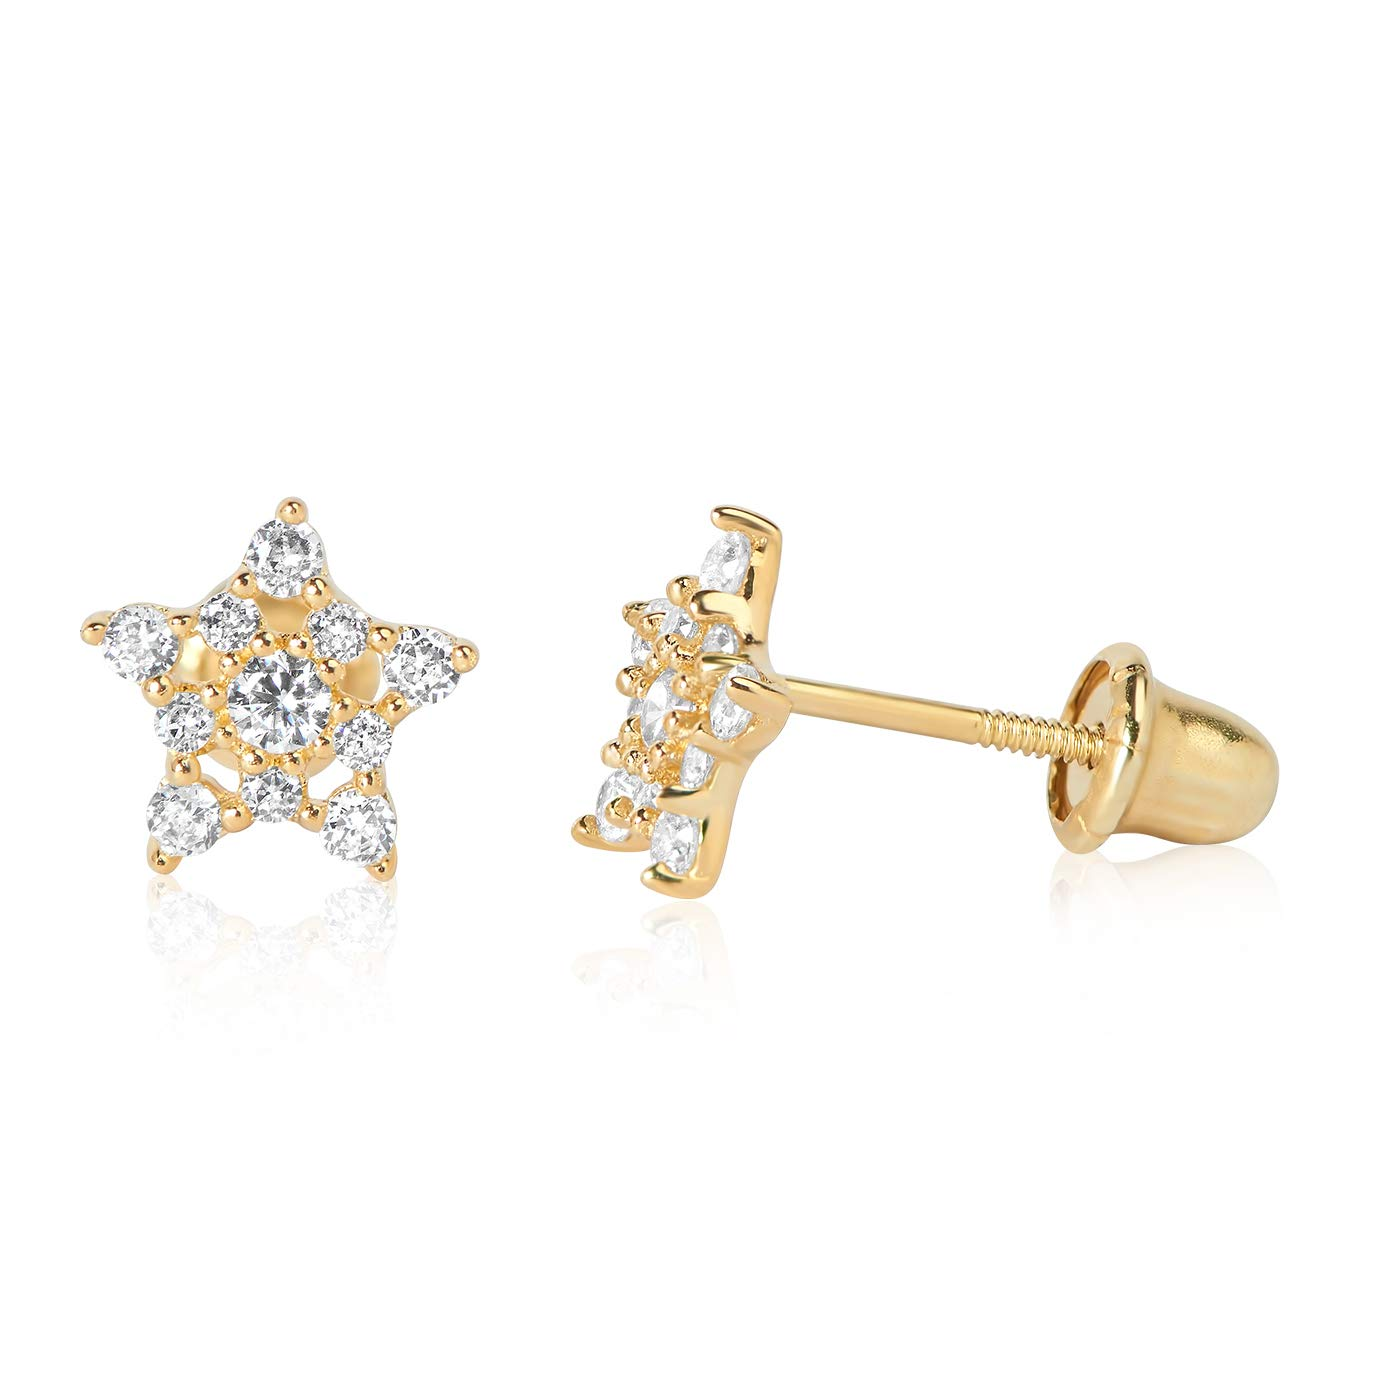 Olivias Collection 10k Yellow Gold Screw Back Stud Earrings